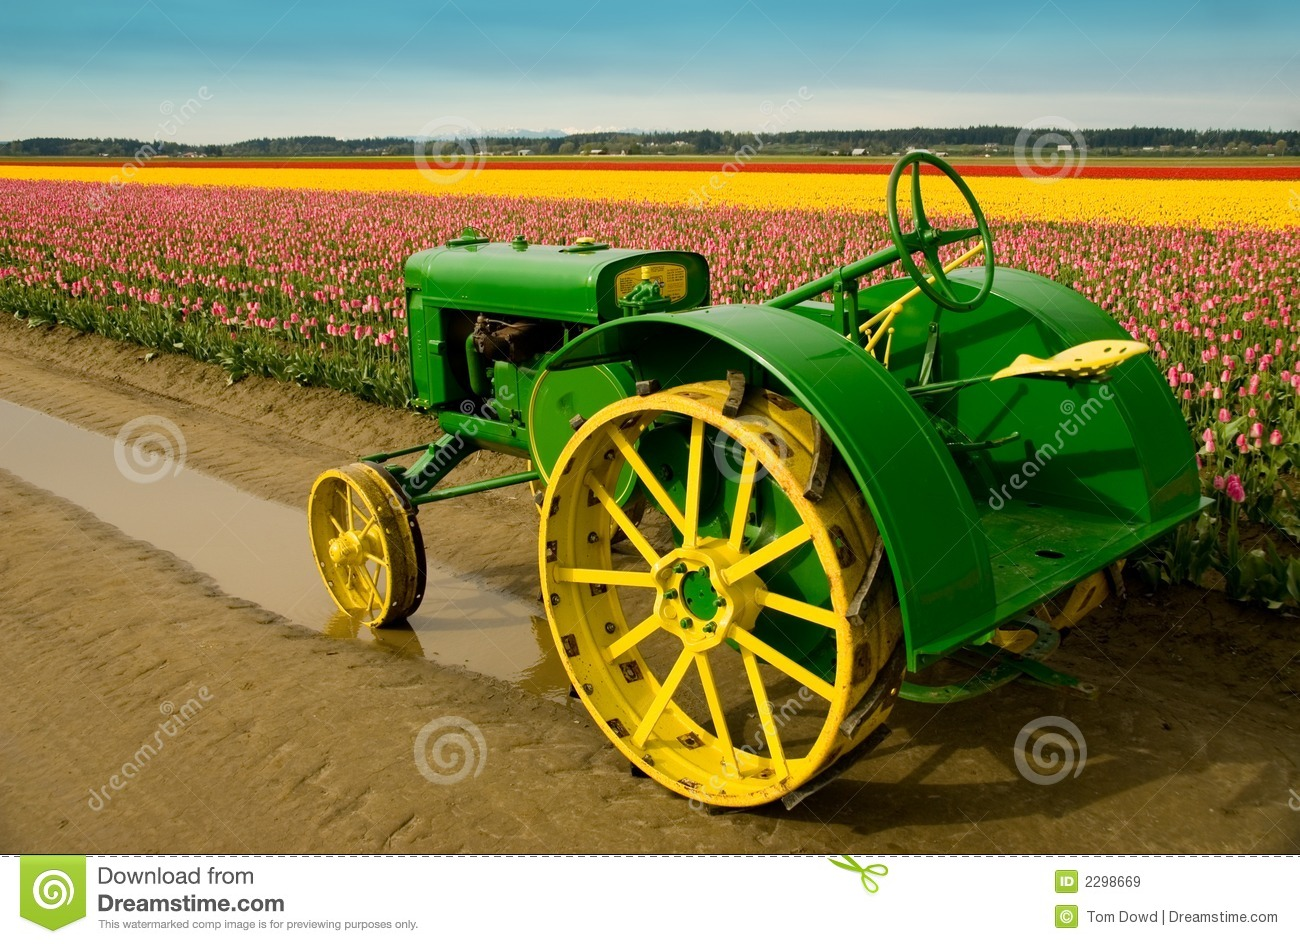 John deere waterloo photo - 3